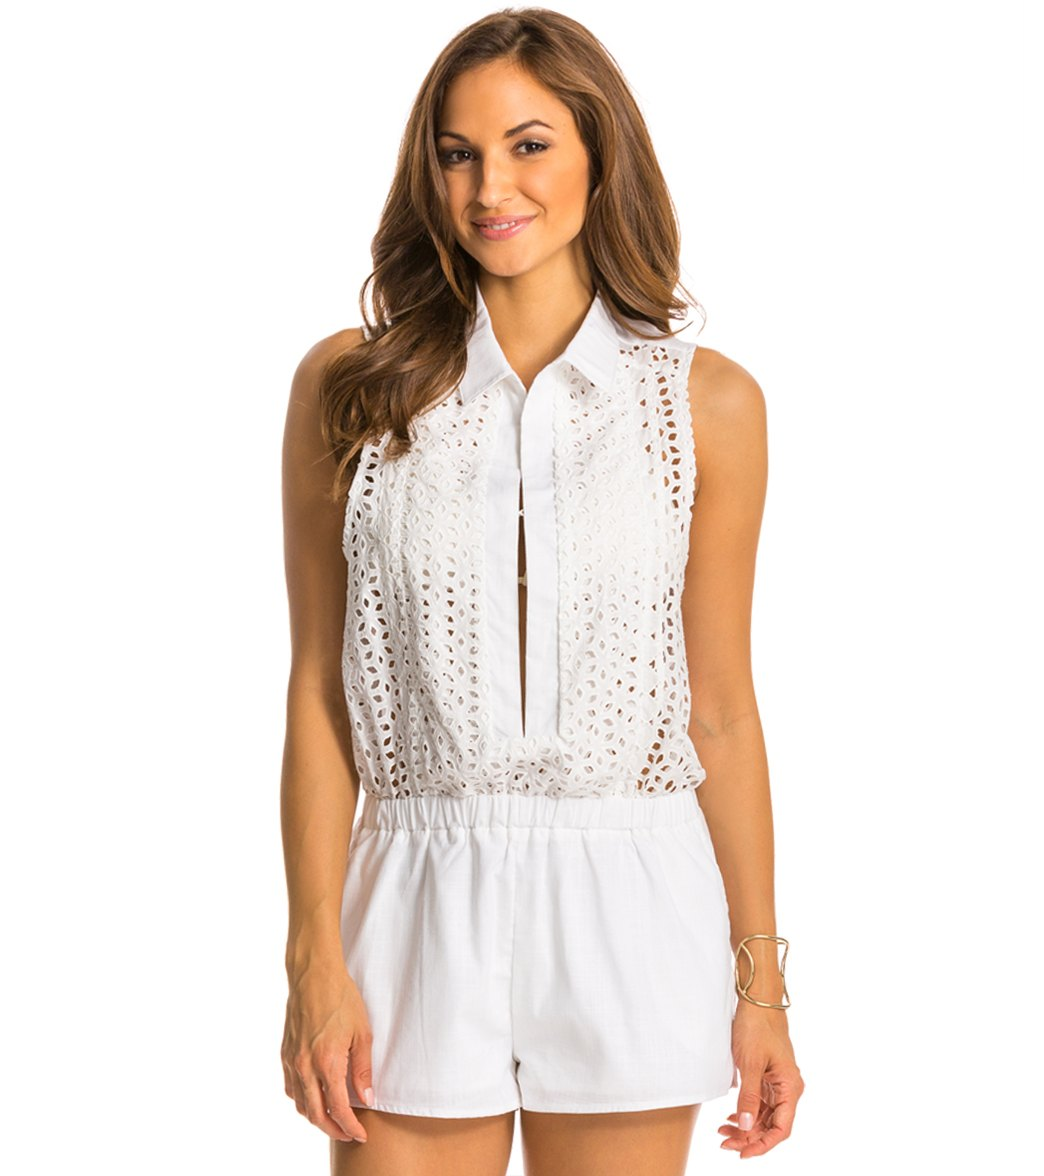 Red Carter Neo Bohemia Eyelet Cover Up Romper Cotton